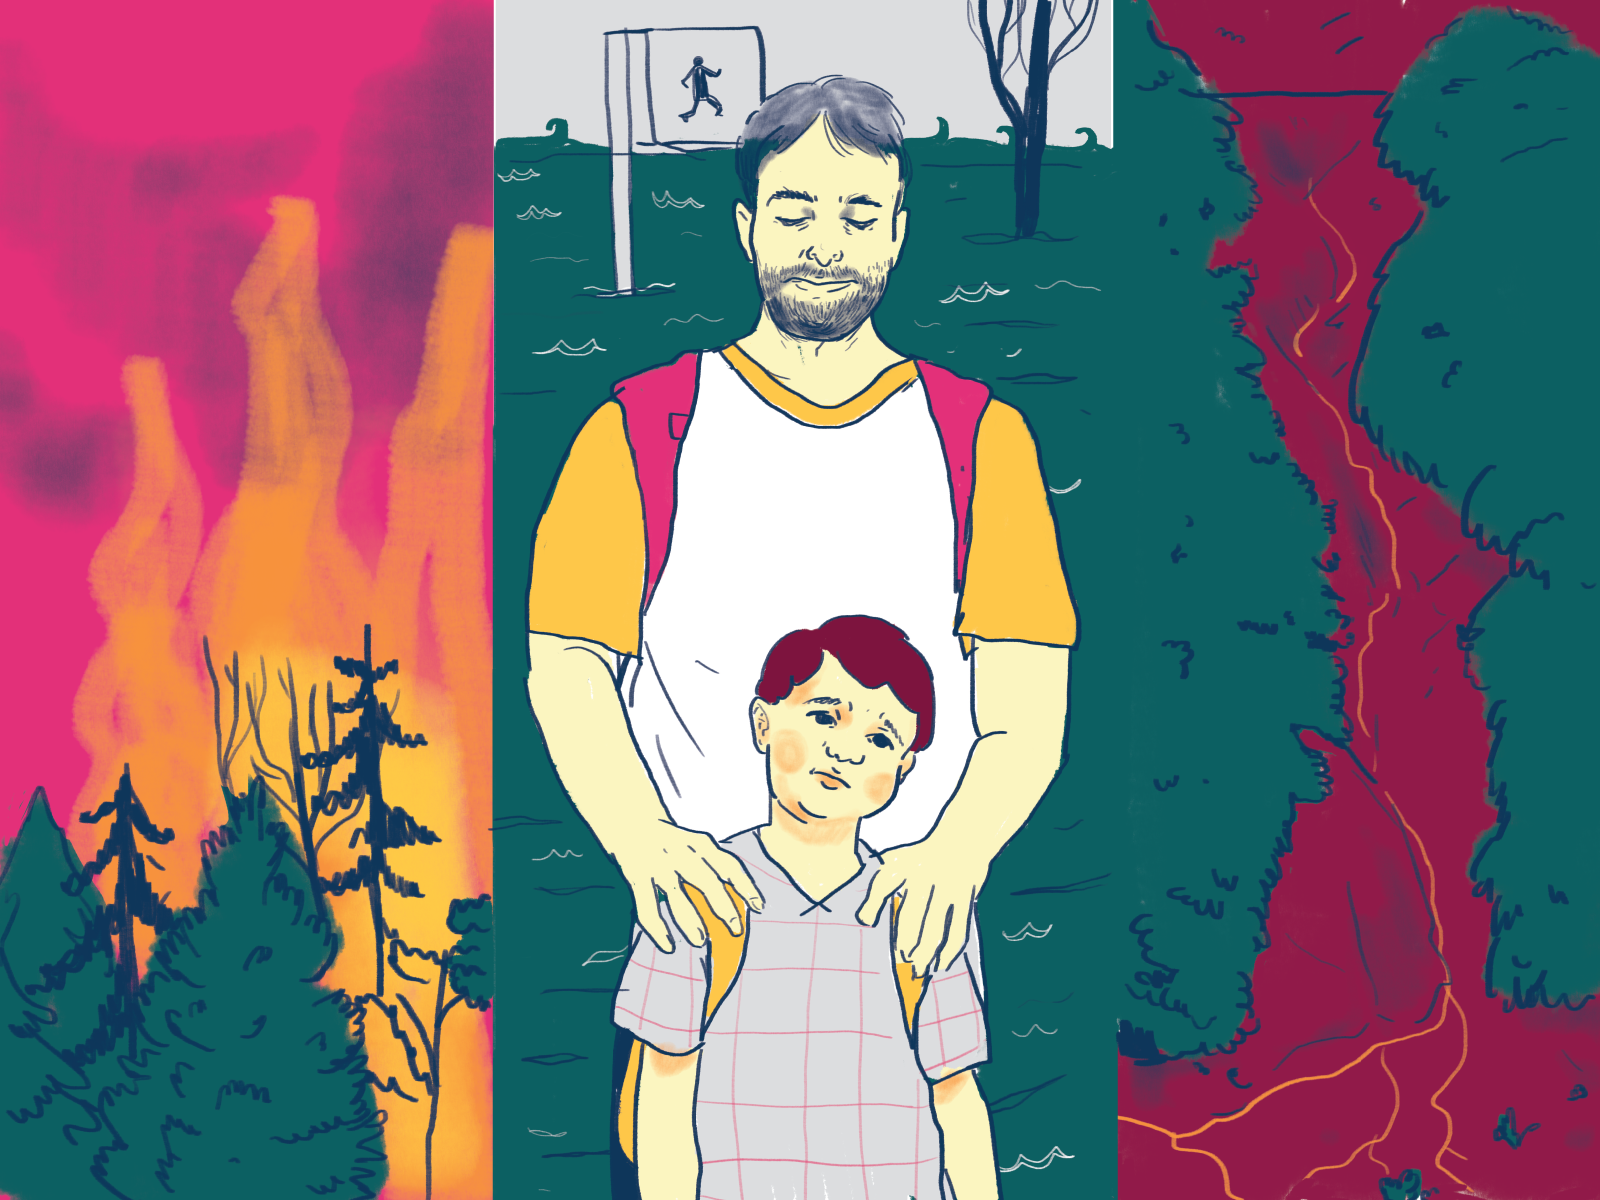 Illustration of father with hands on son's shoulders next to scenes of forest fires, flooding, and mudslides.